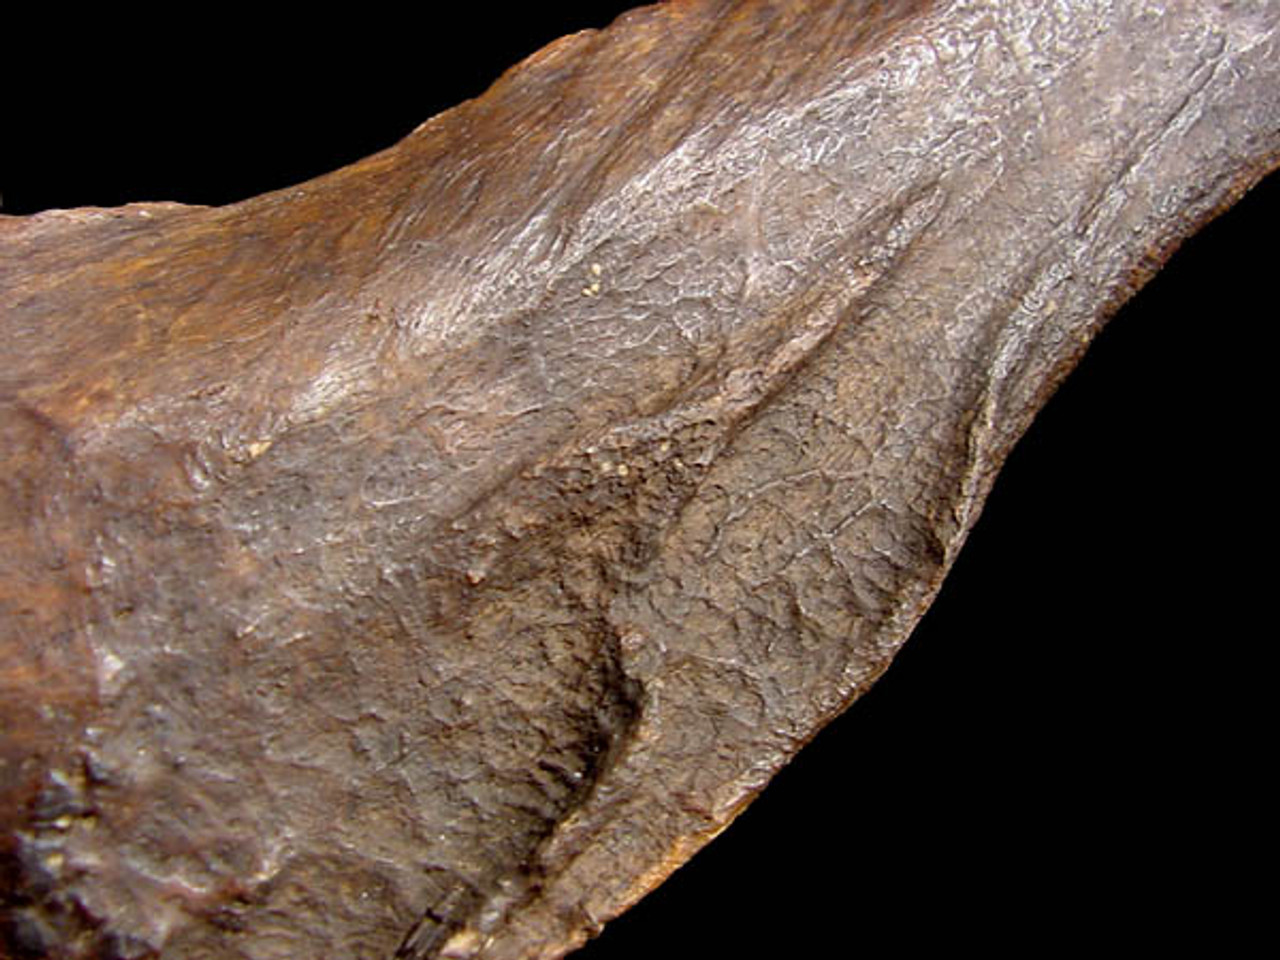 LM3-006 - FOSSIL THINOBADISTES GIANT GROUND SLOTH COMPLETE AND PERFECT RADIUS BONE